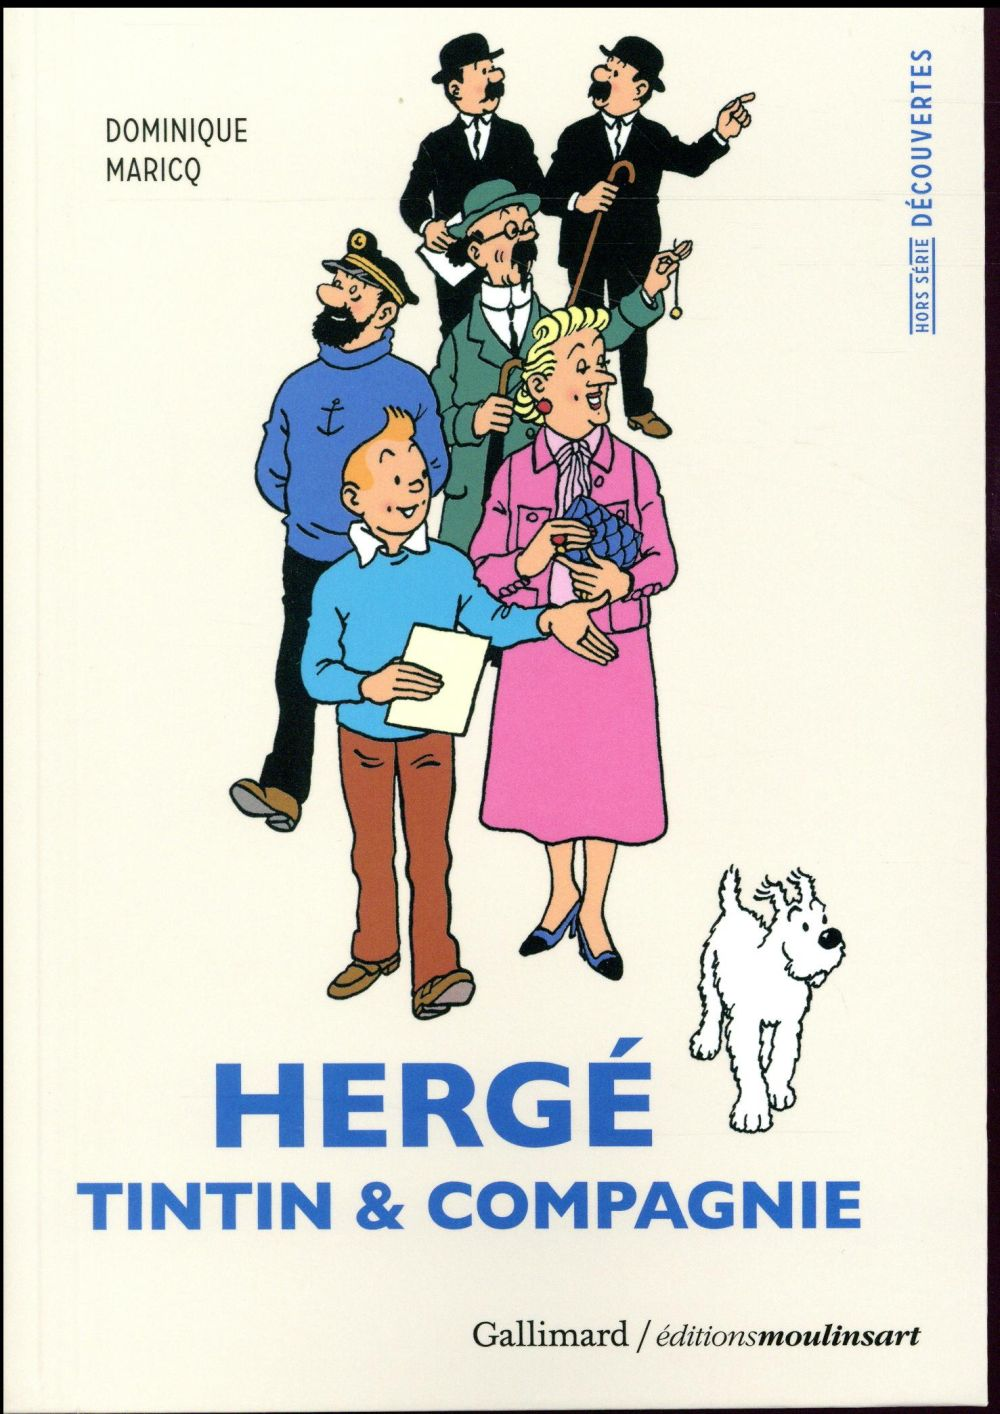 HERGE TINTIN & COMPAGNIE